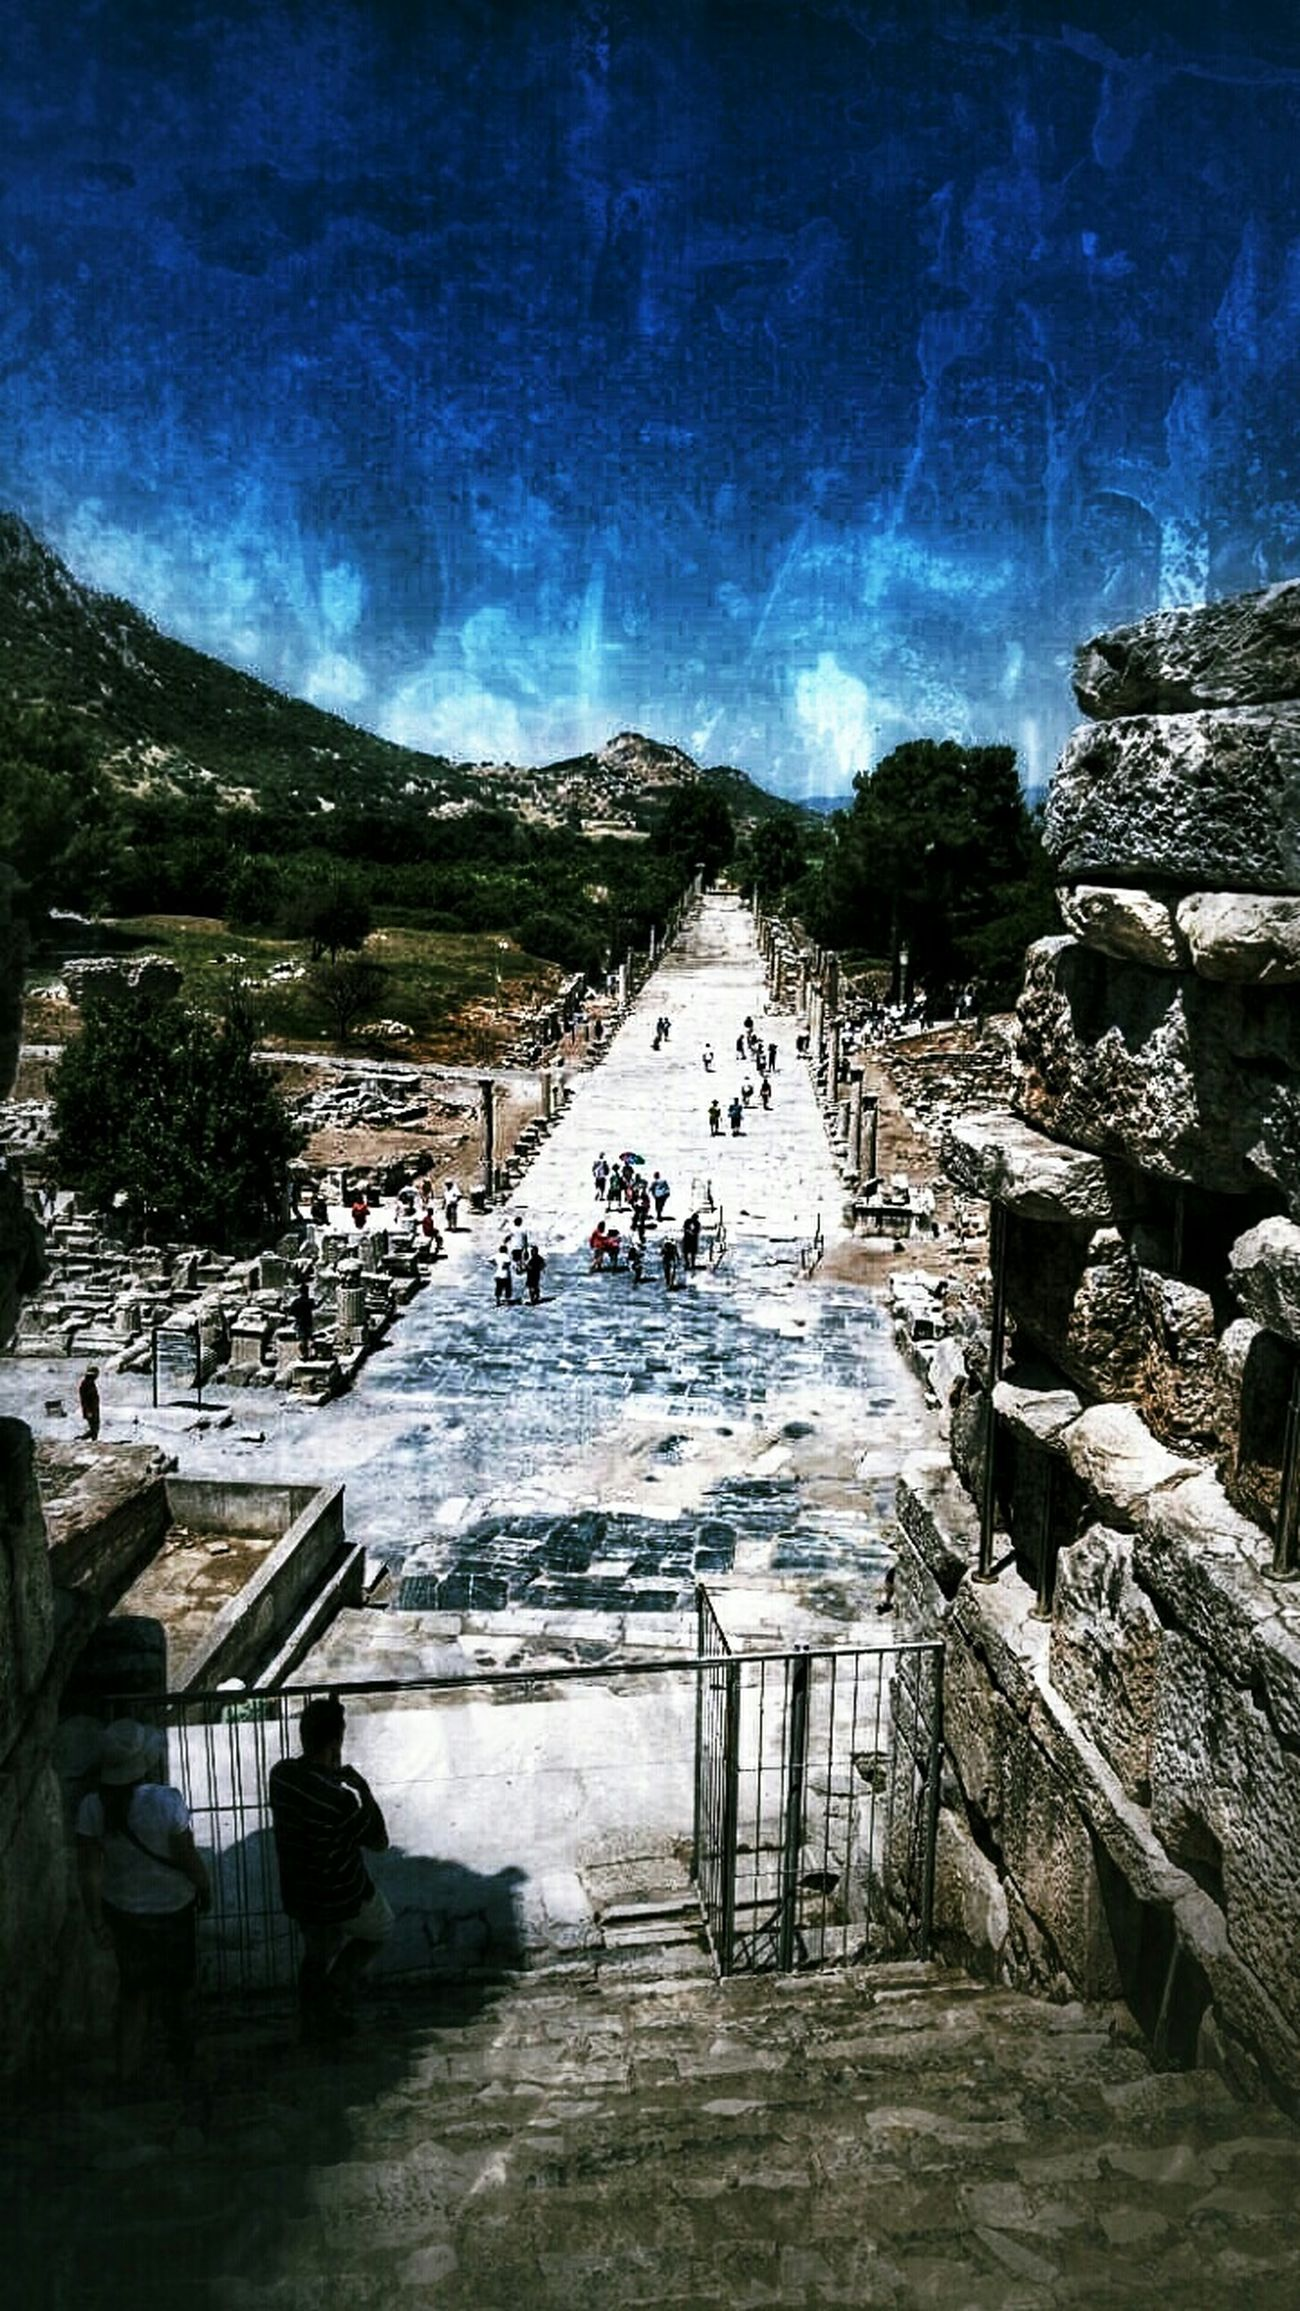 Ephesus Art Museum Visiting Museum Turkey EyeEm Best Shots - Ephesus Eyeem Ephesus - Turkey Historisces Ephesus Love Museum Nature On Your Doorstep